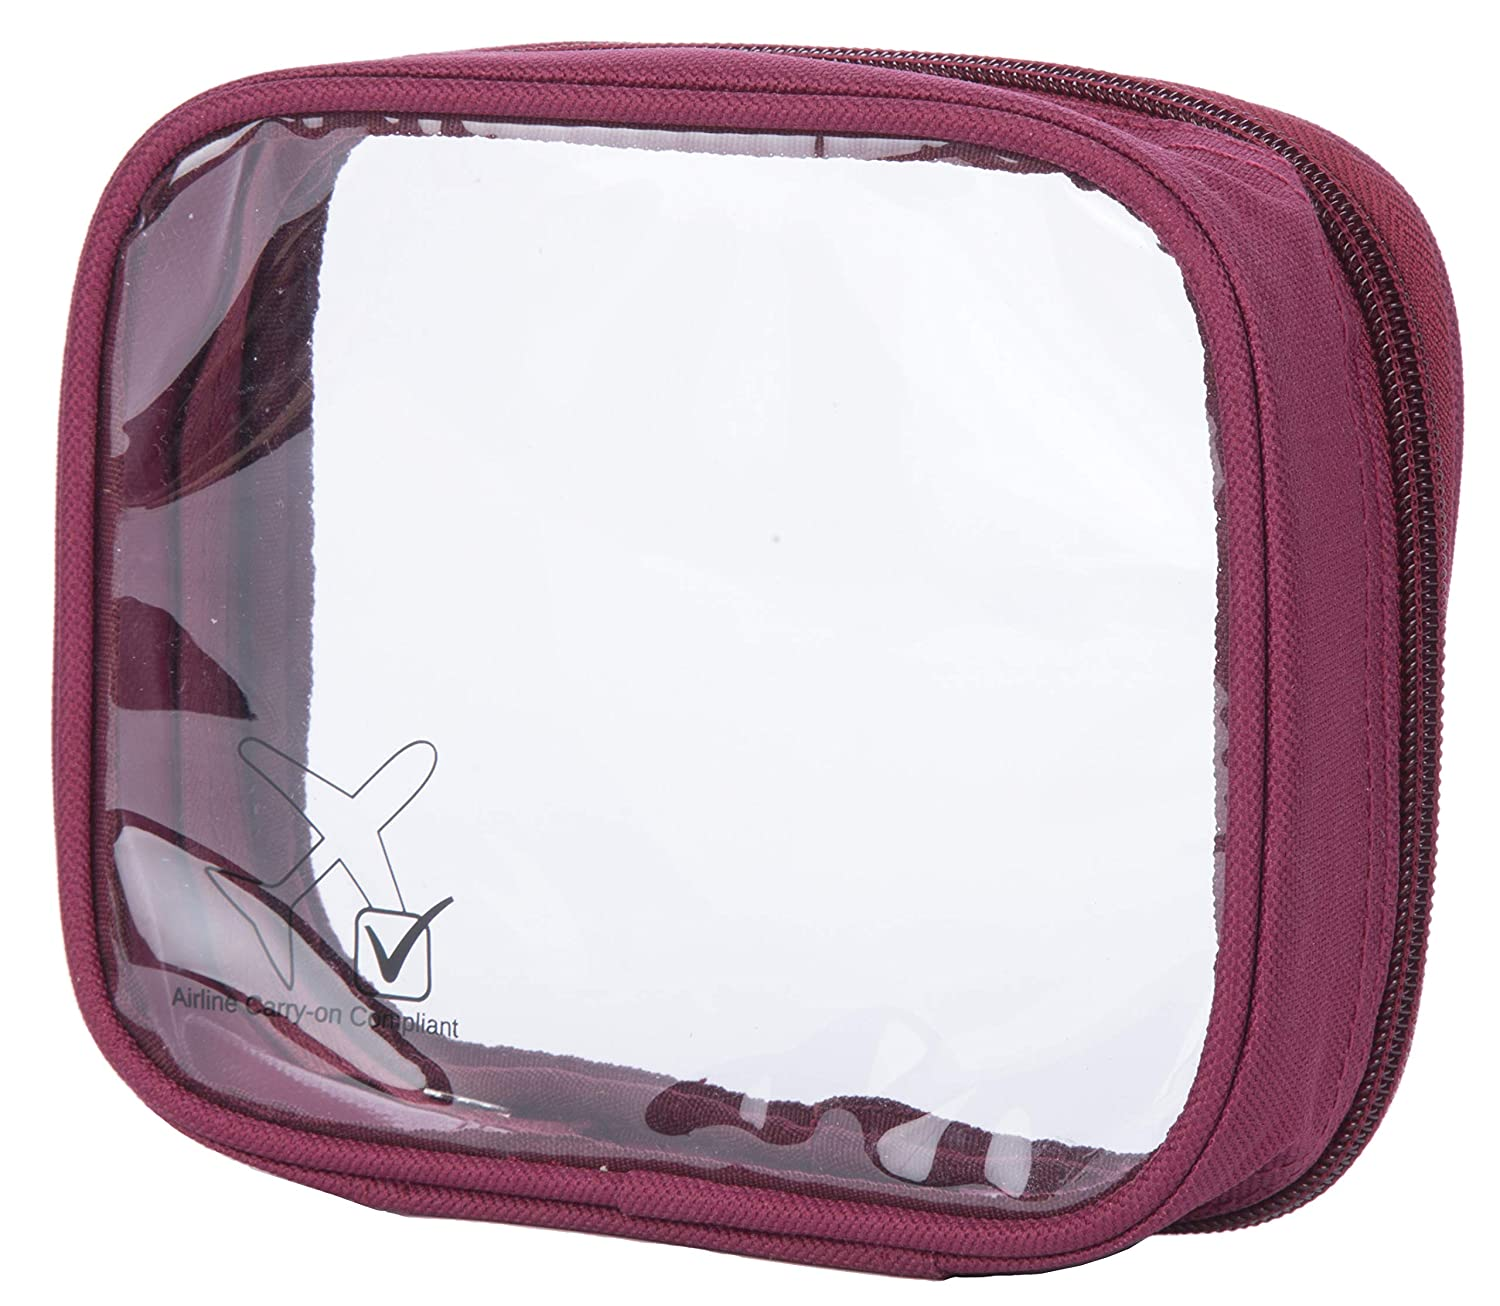 ShoutJump TSA Approved Clear Durable Toiletry Bag for Domestic/International Travel | Quart Size for 3-1-1 Compliant Toiletries/Cosmetics/Accessories in Carry-On Luggage (1-pc, Burgundy)